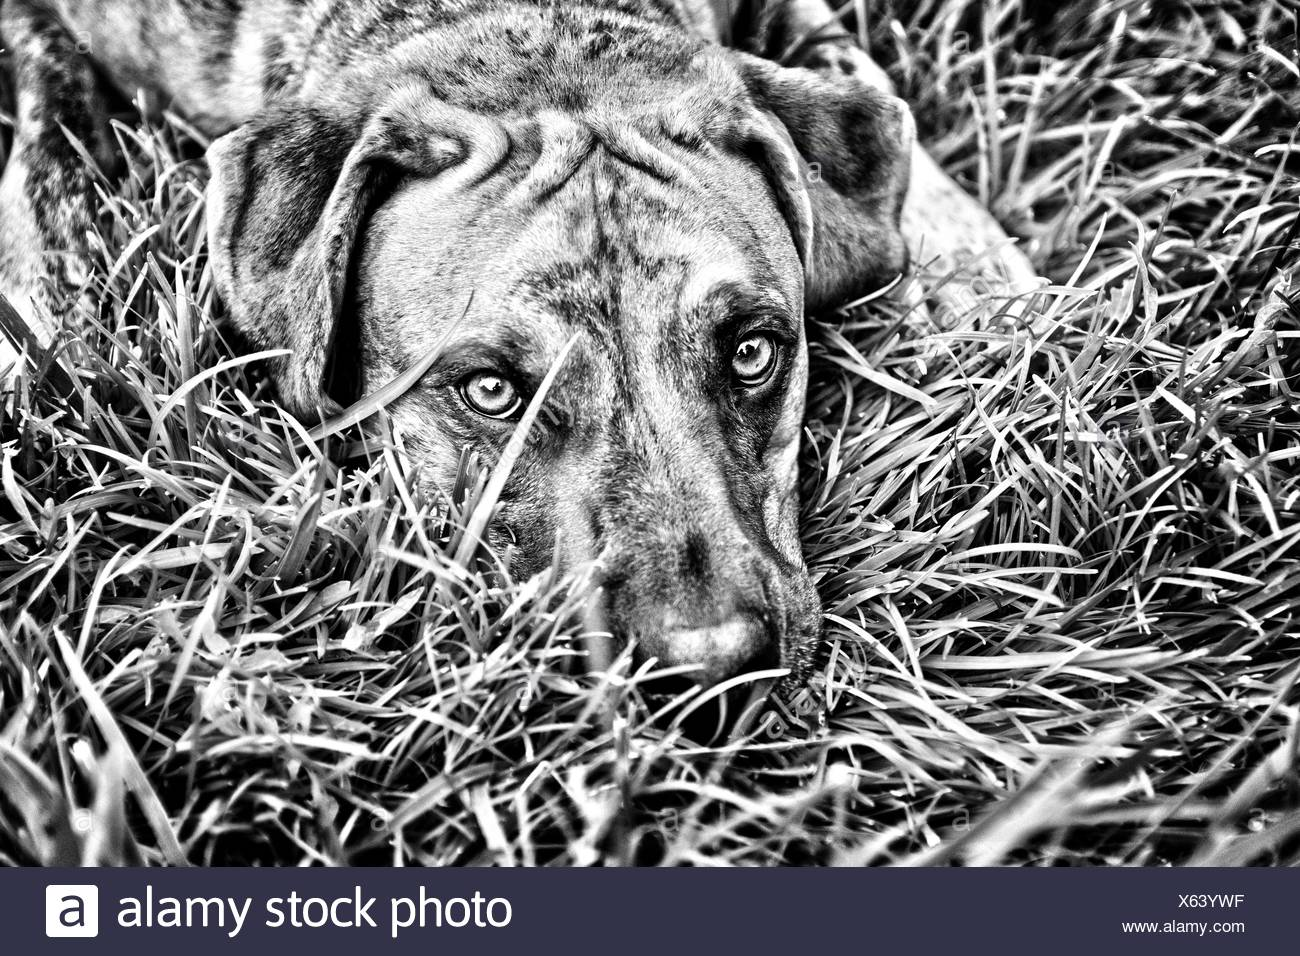 Dog lying in grass - Stock Image